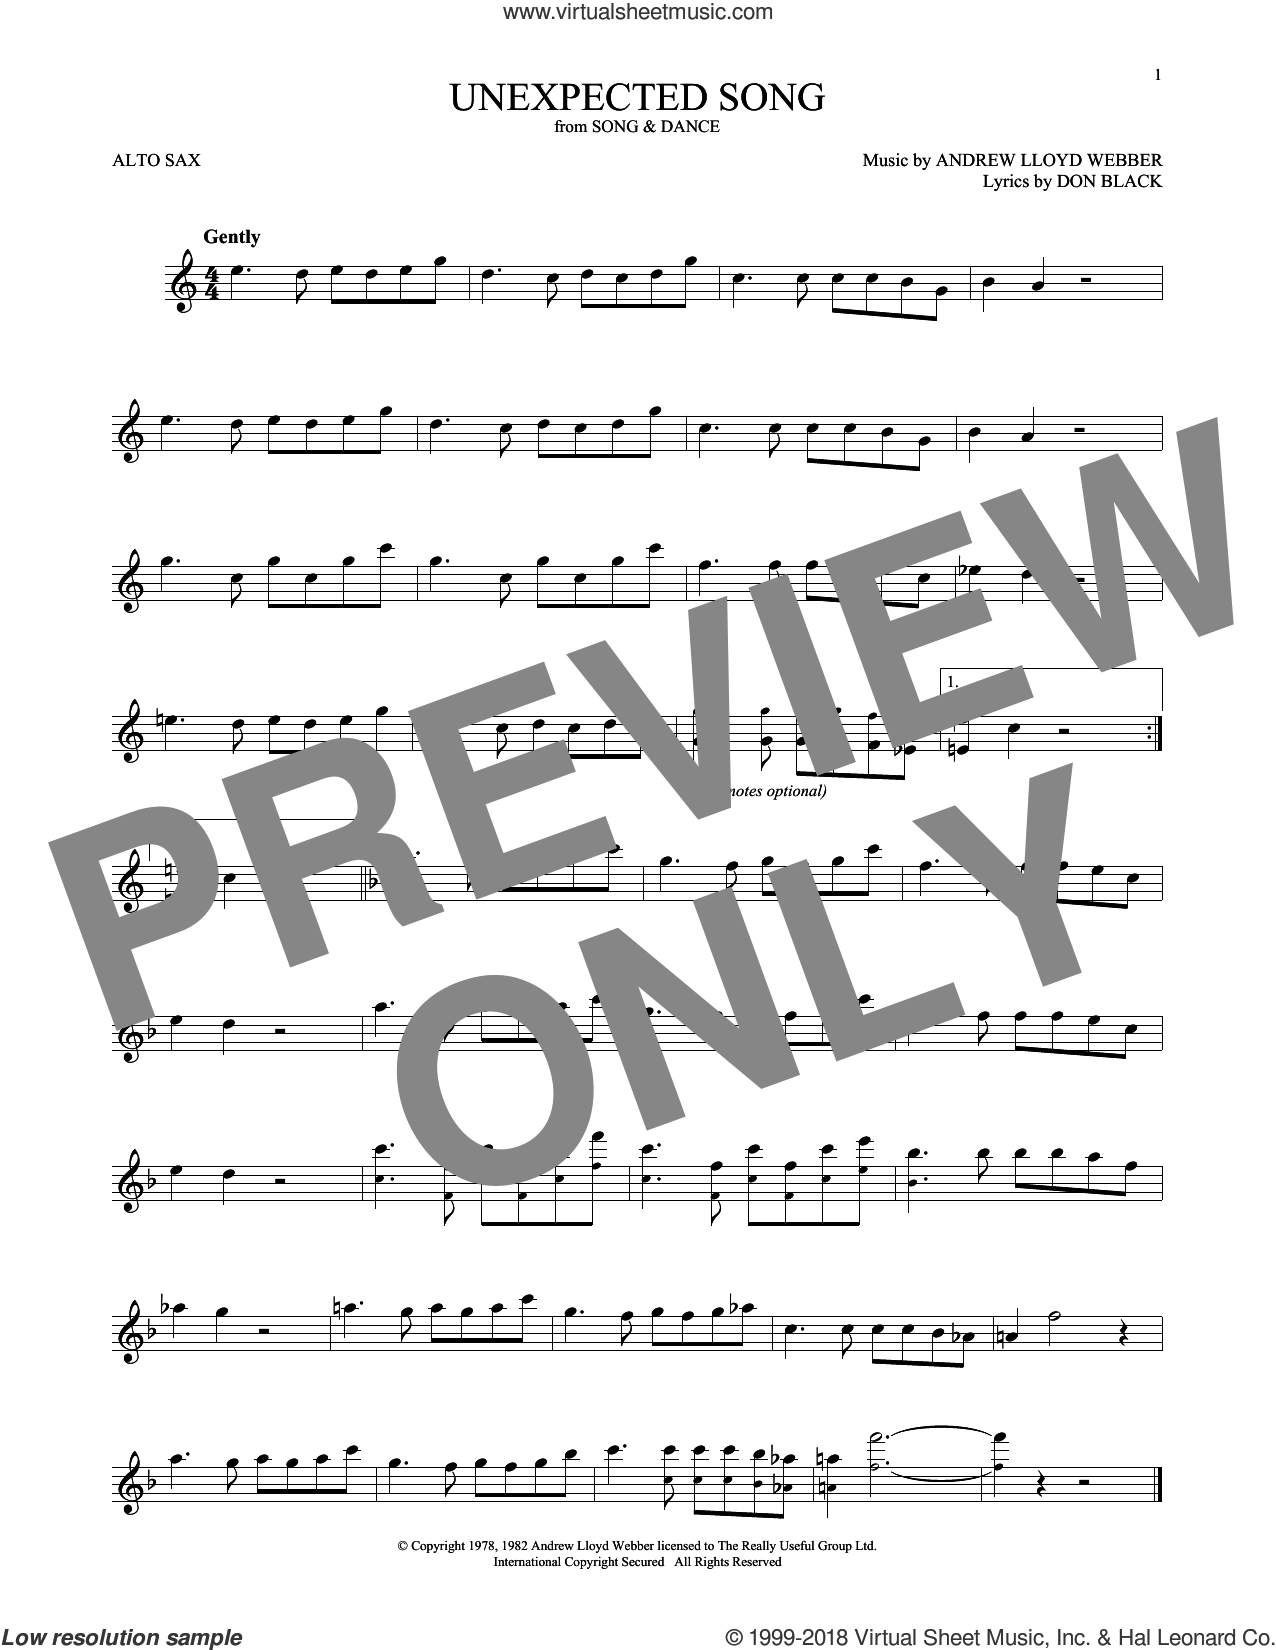 Unexpected Song (from Song and Dance) sheet music for alto saxophone solo by Andrew Lloyd Webber, Bernadette Peters, Michael Crawford and Don Black, intermediate skill level